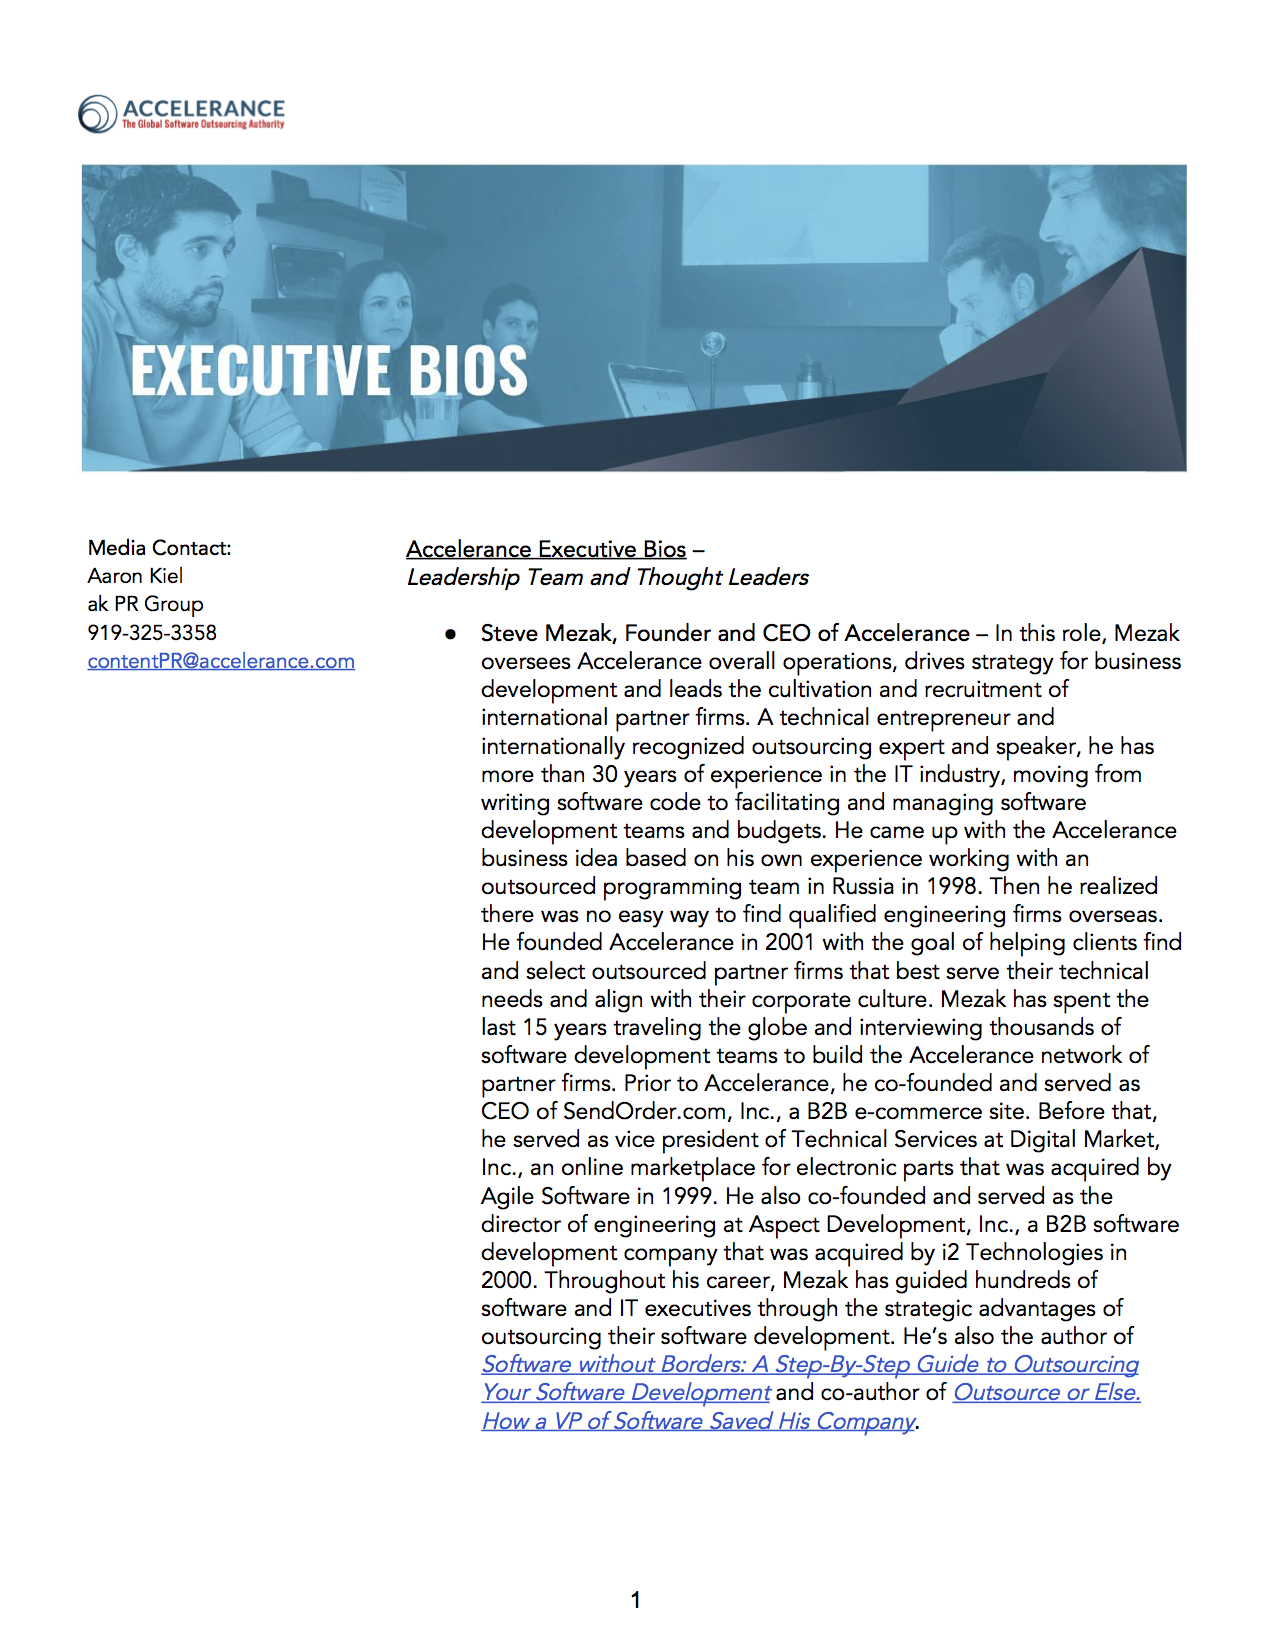 PressKit-ExecutiveBios.png